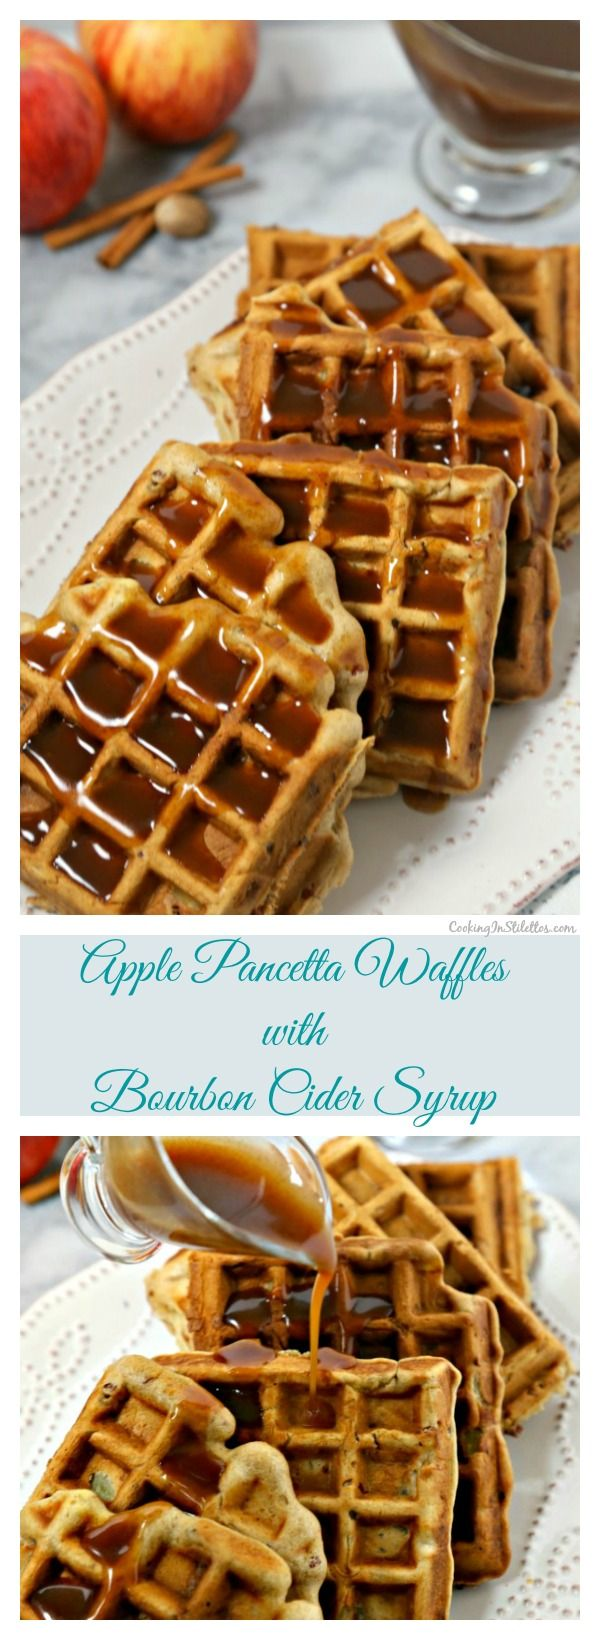 Bourbon, Syrup and Waffles on Pinterest